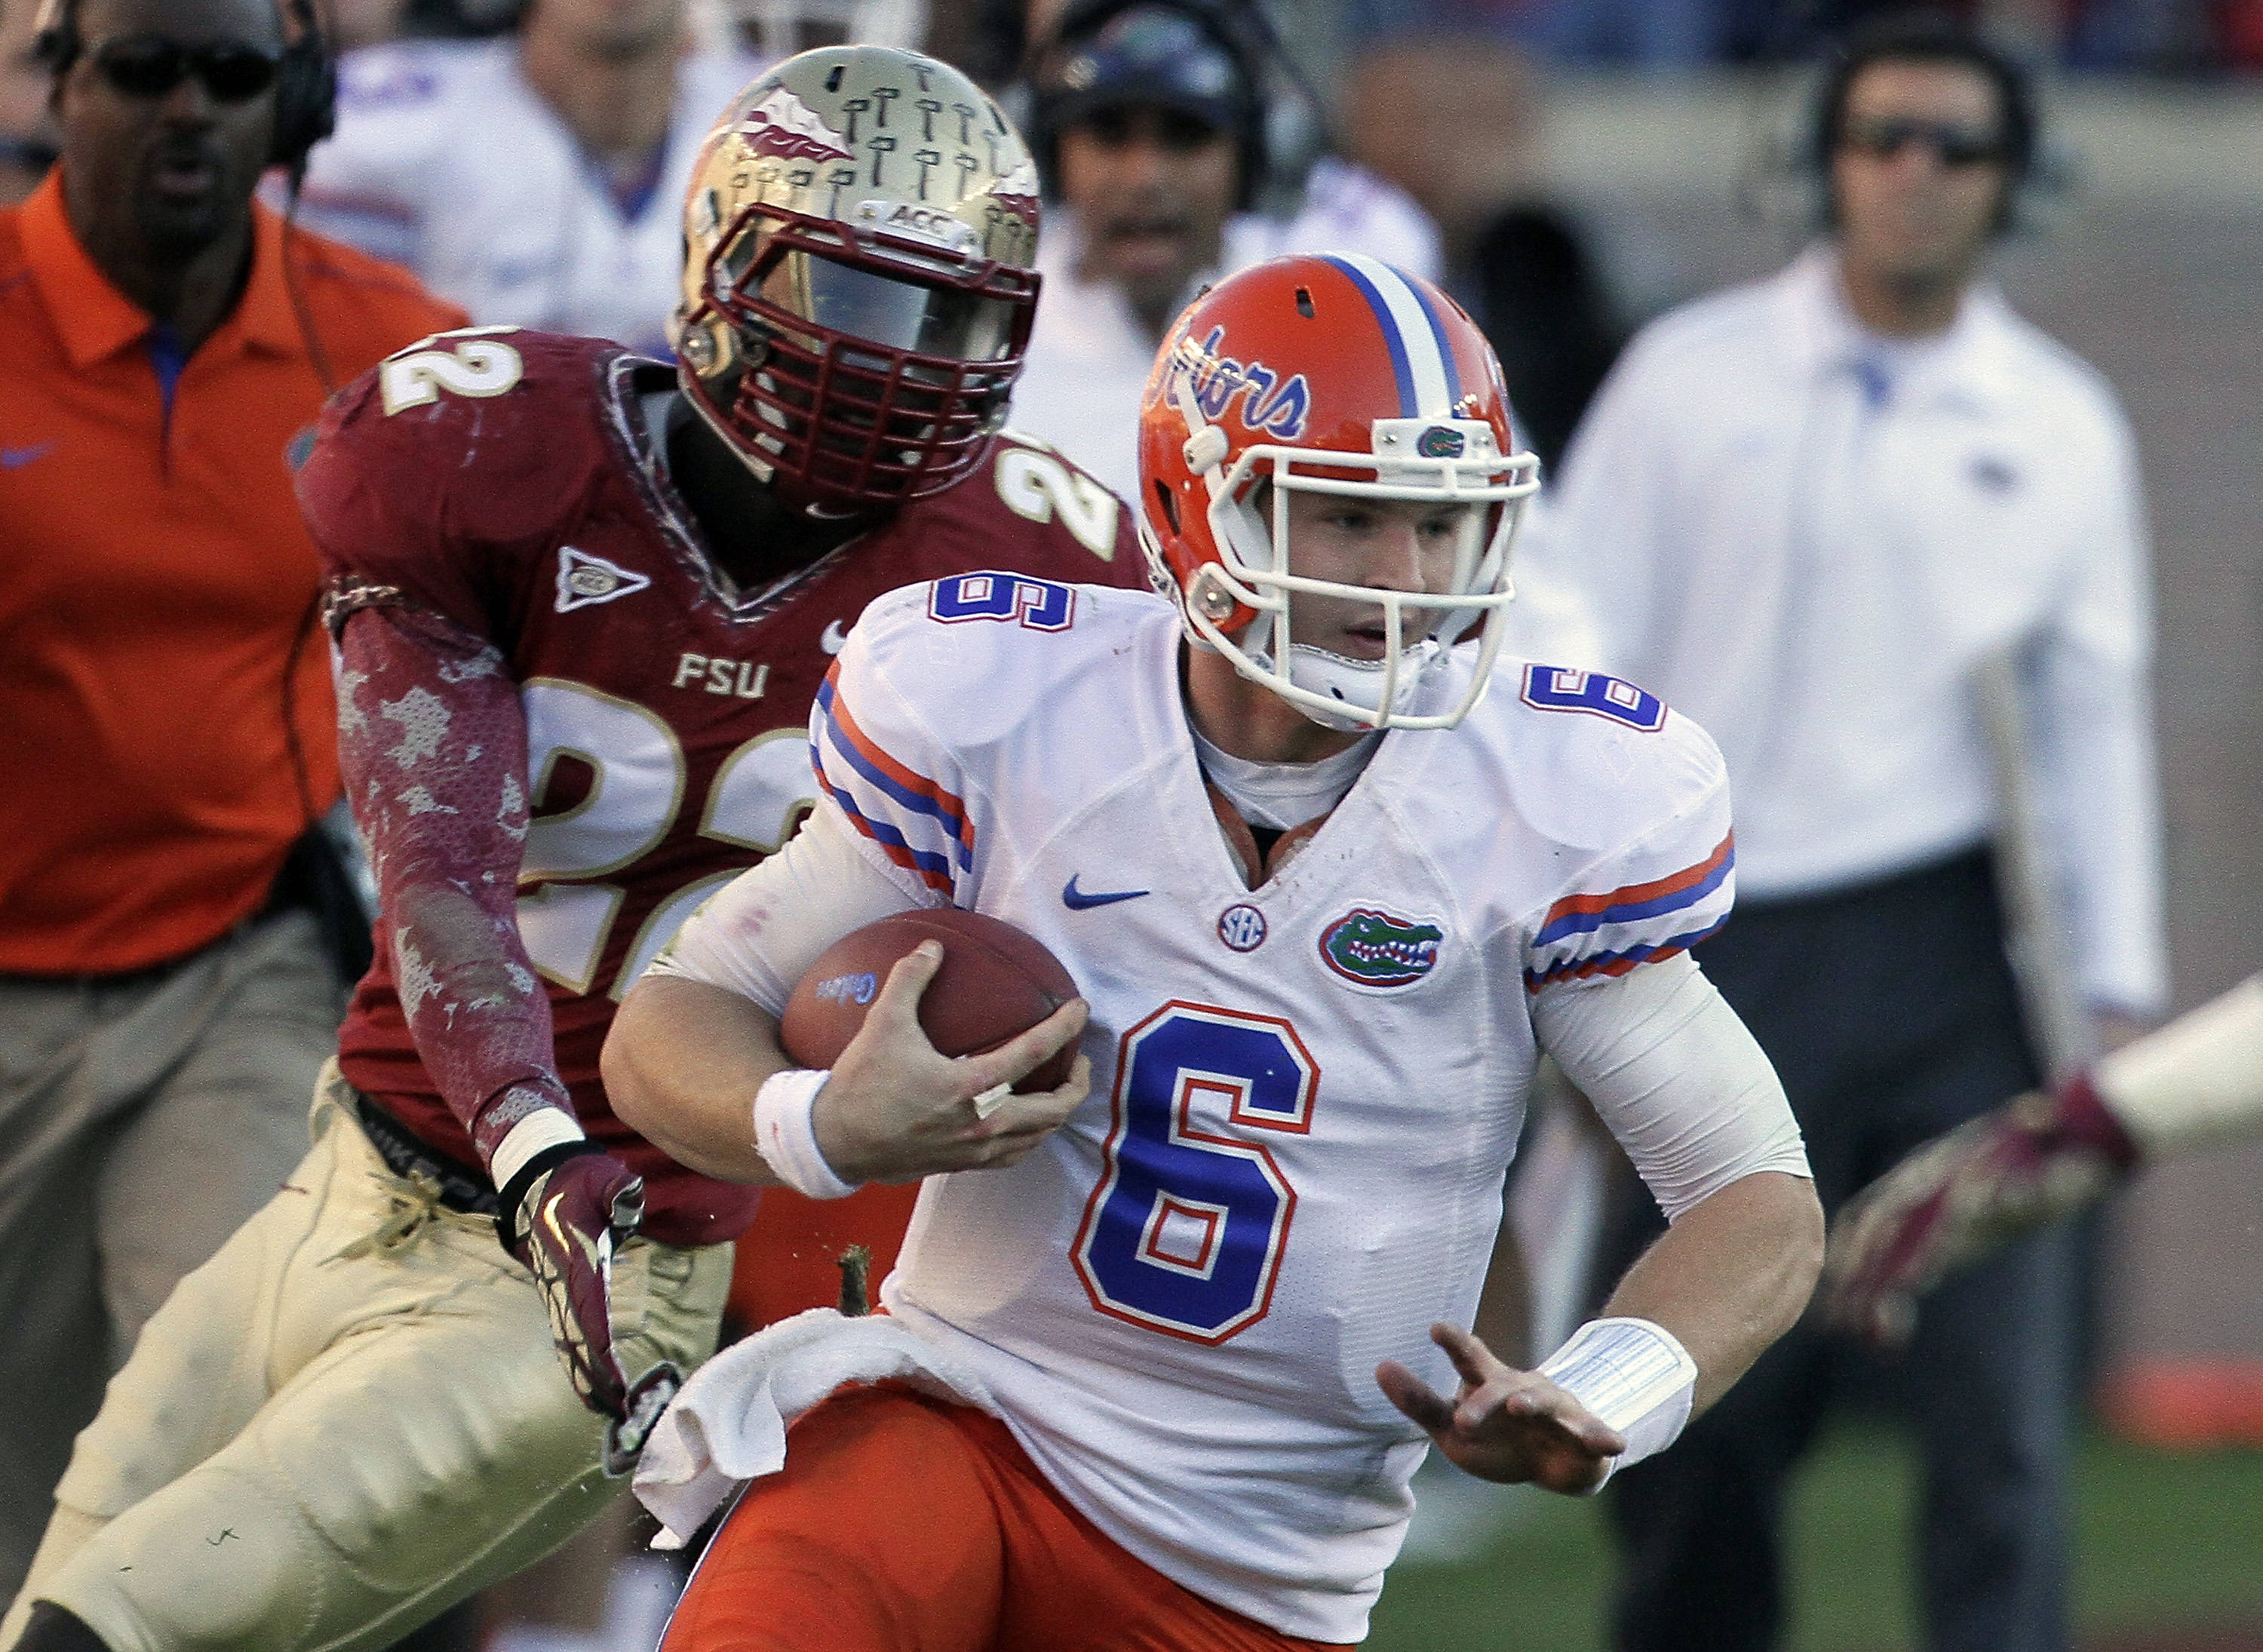 Florida quarterback Jeff Driskel (6) runs for yardage as Florida State linebacker Telvin Smith. (AP Photo/John Raoux)